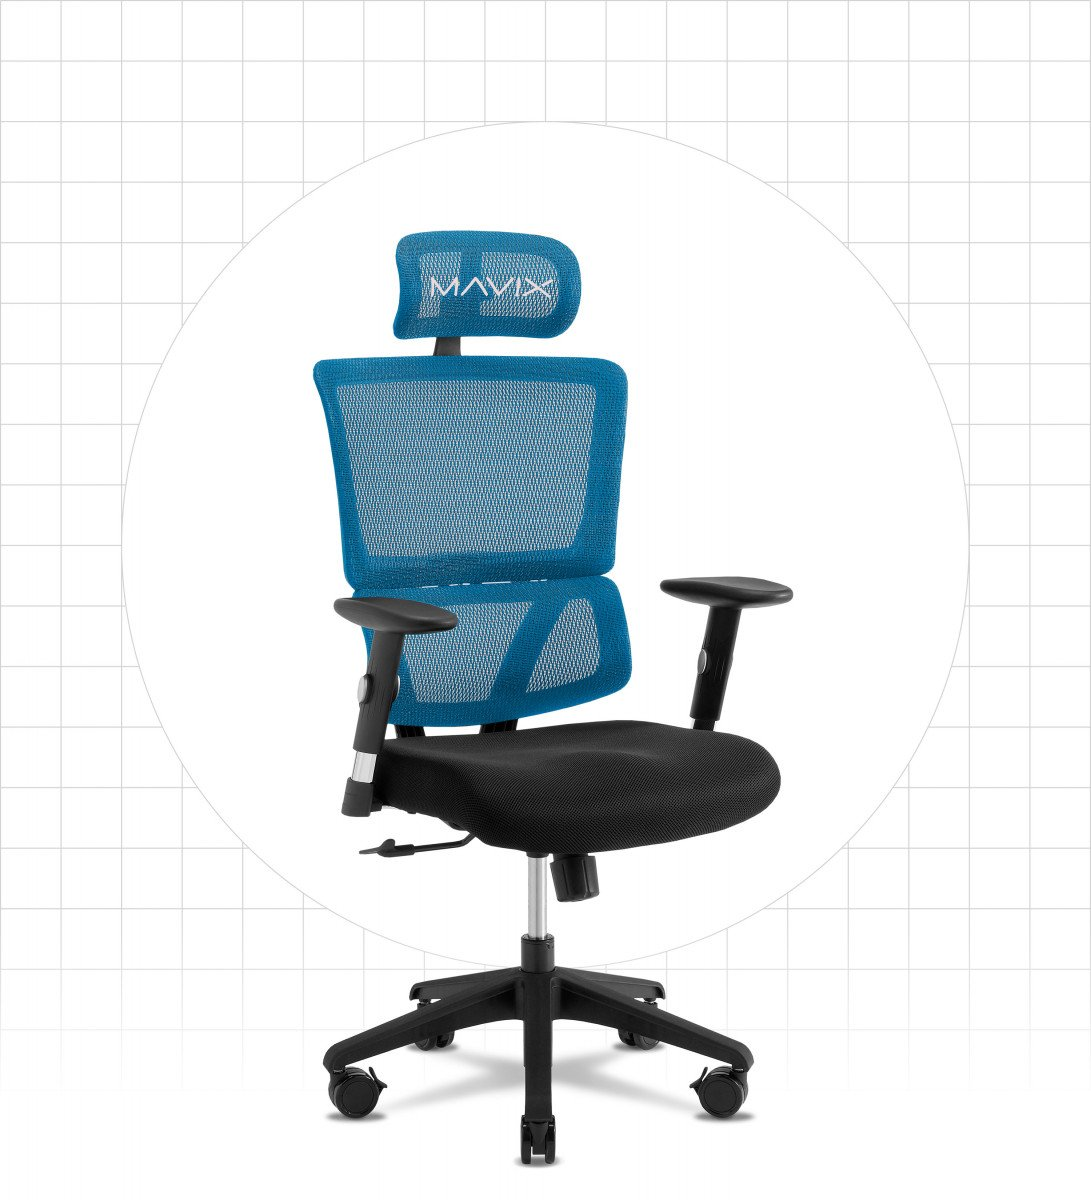 M4 Gaming Chair